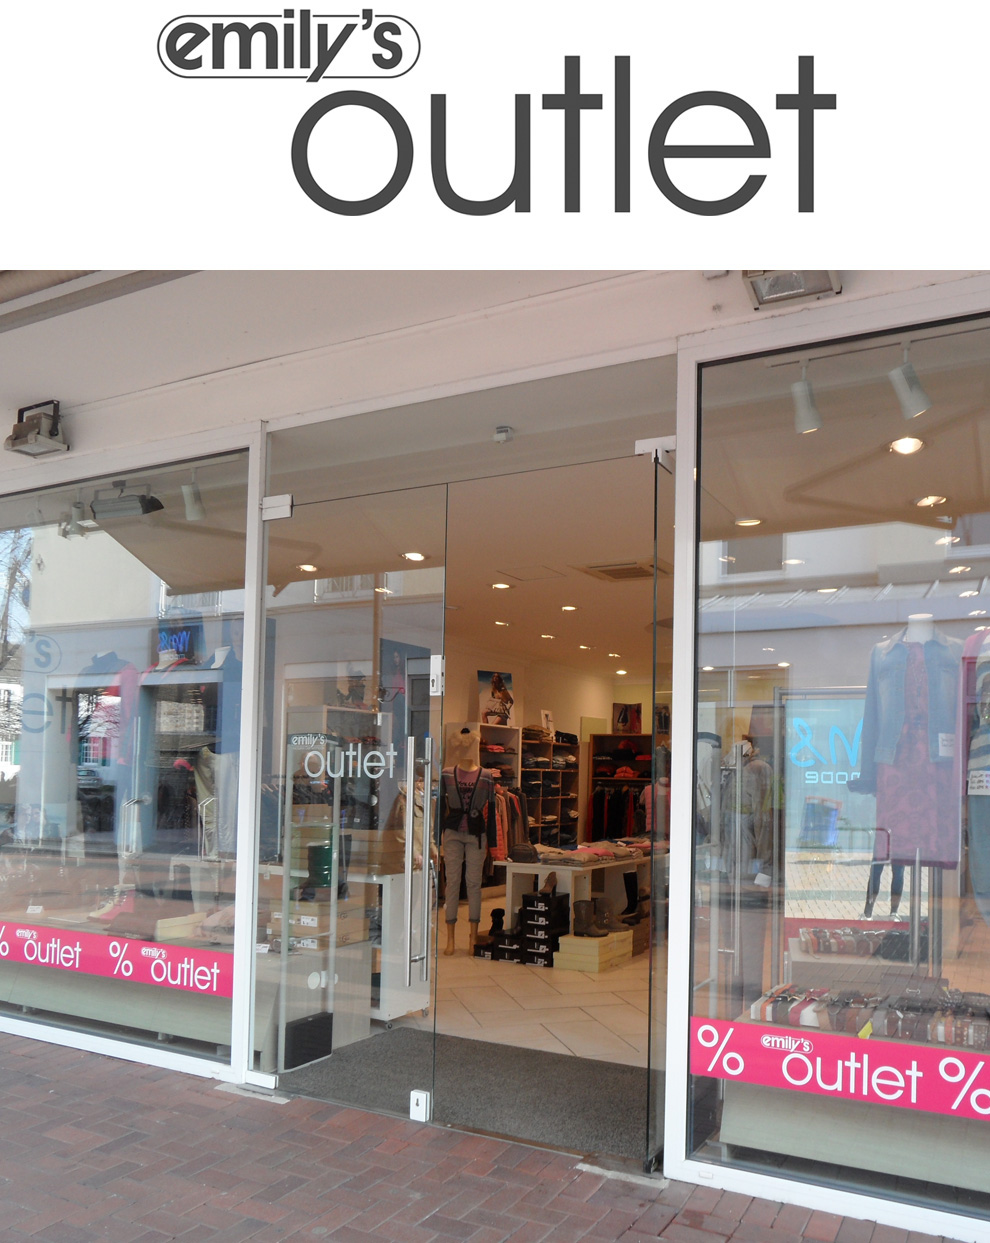 Emilys`s Outlet Hilden